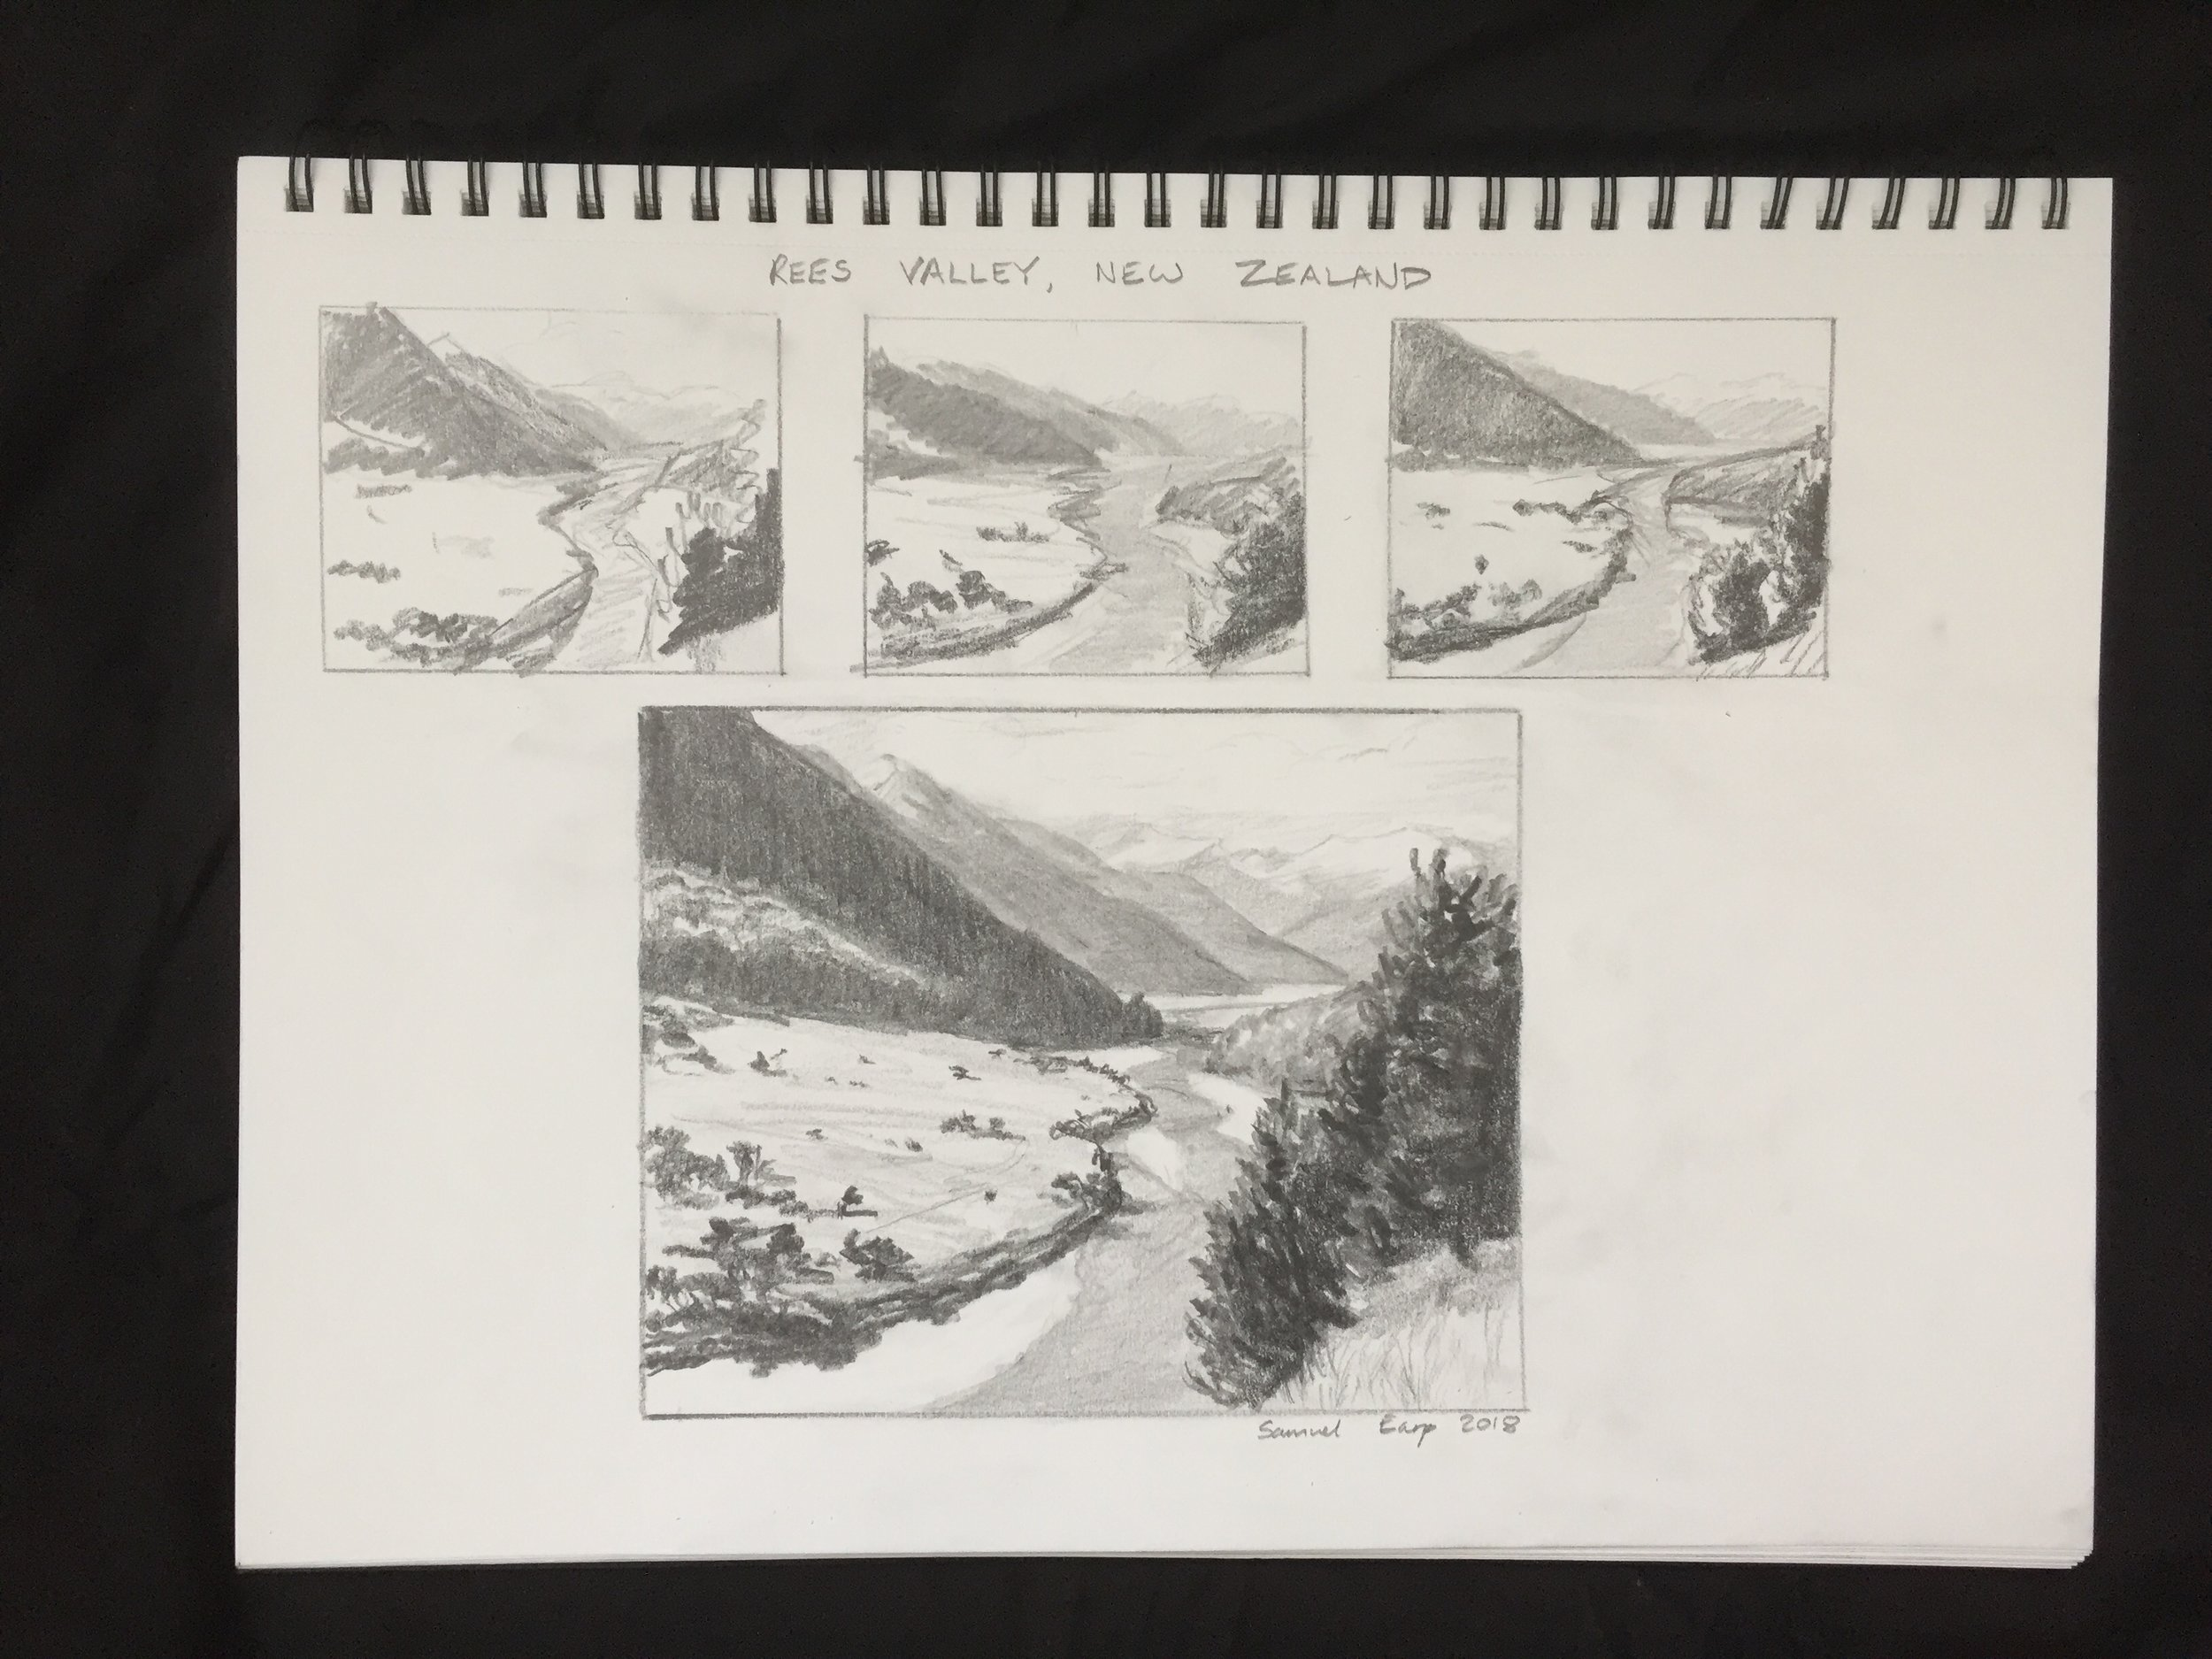 I use hard pencils to achieve the lighter values for the distant mountains. For the dark shadows in the foreground I use a soft 4B pencil.